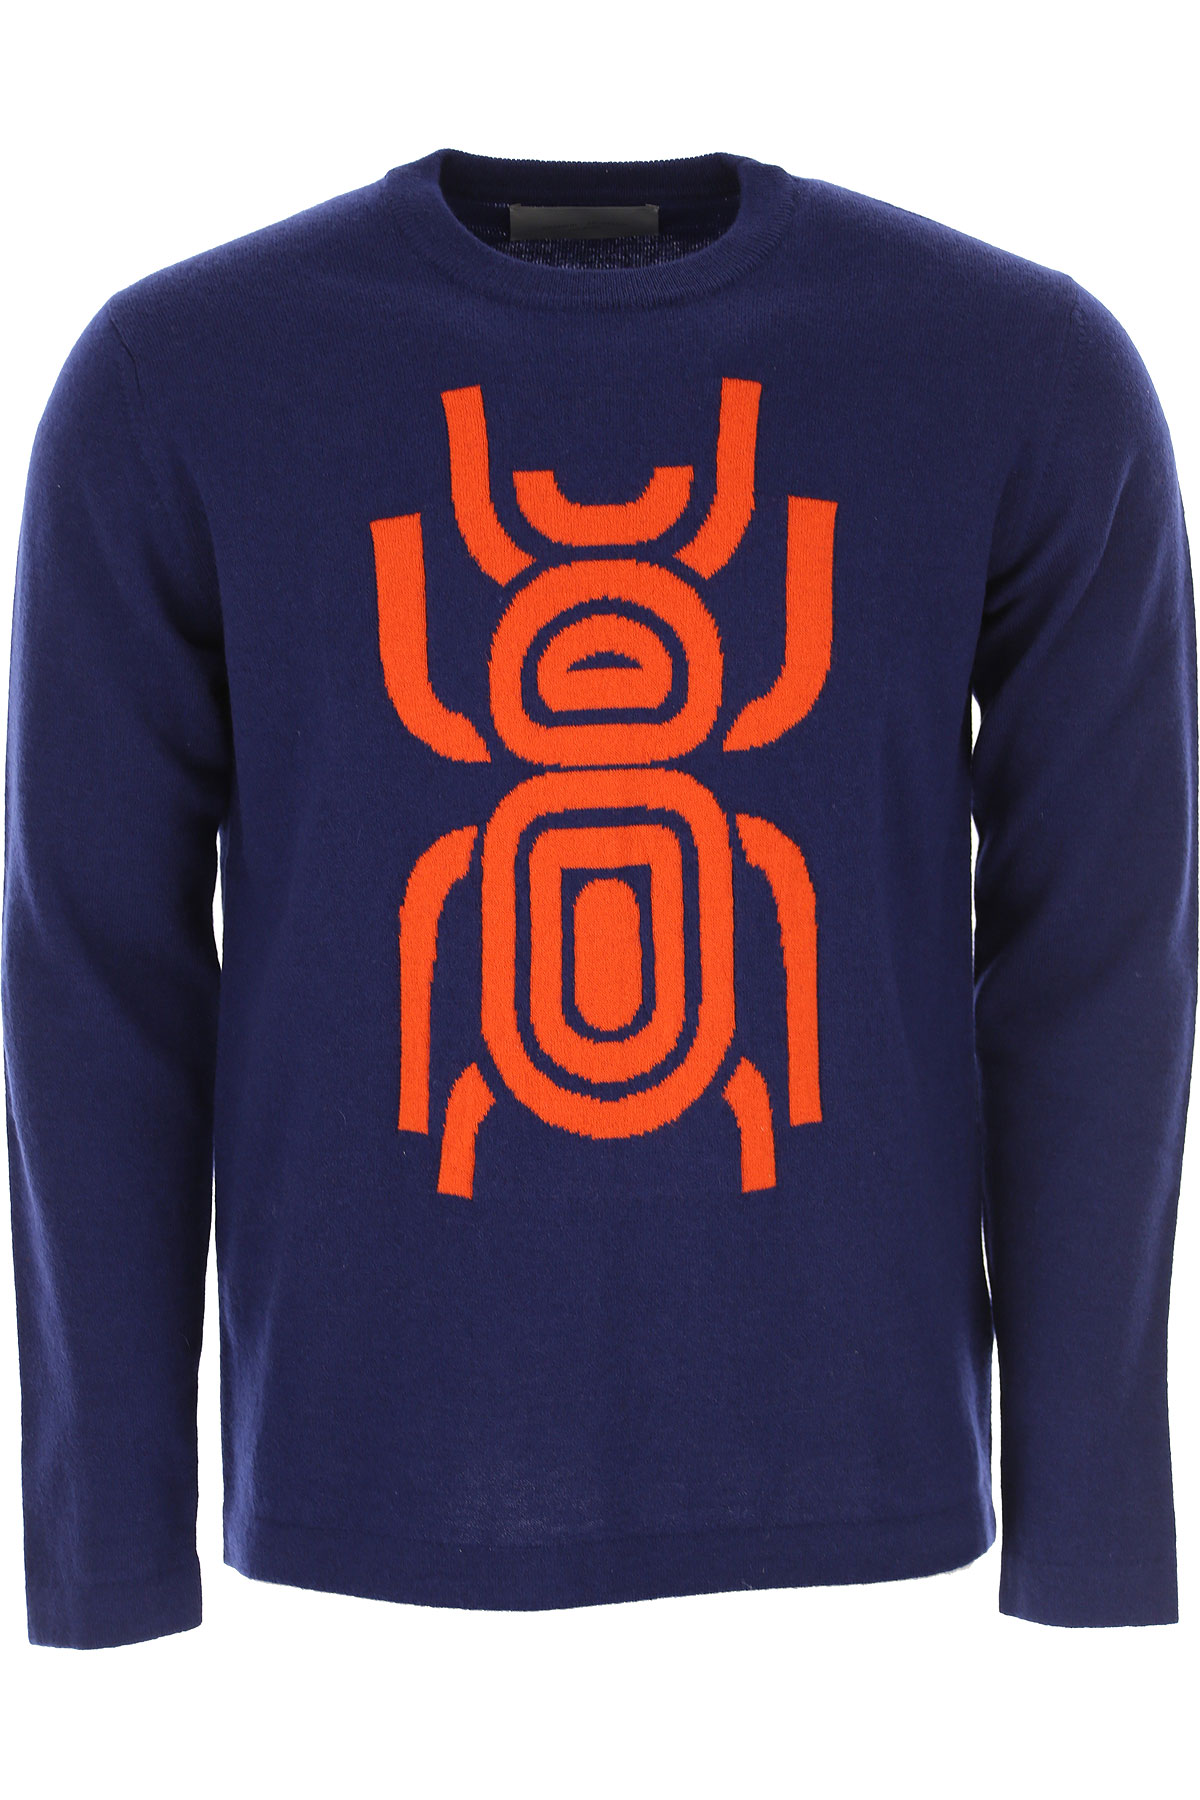 Frankie Morello Sweater for Men Jumper On Sale, Patriot Blue, Wool, 2019, L M XL